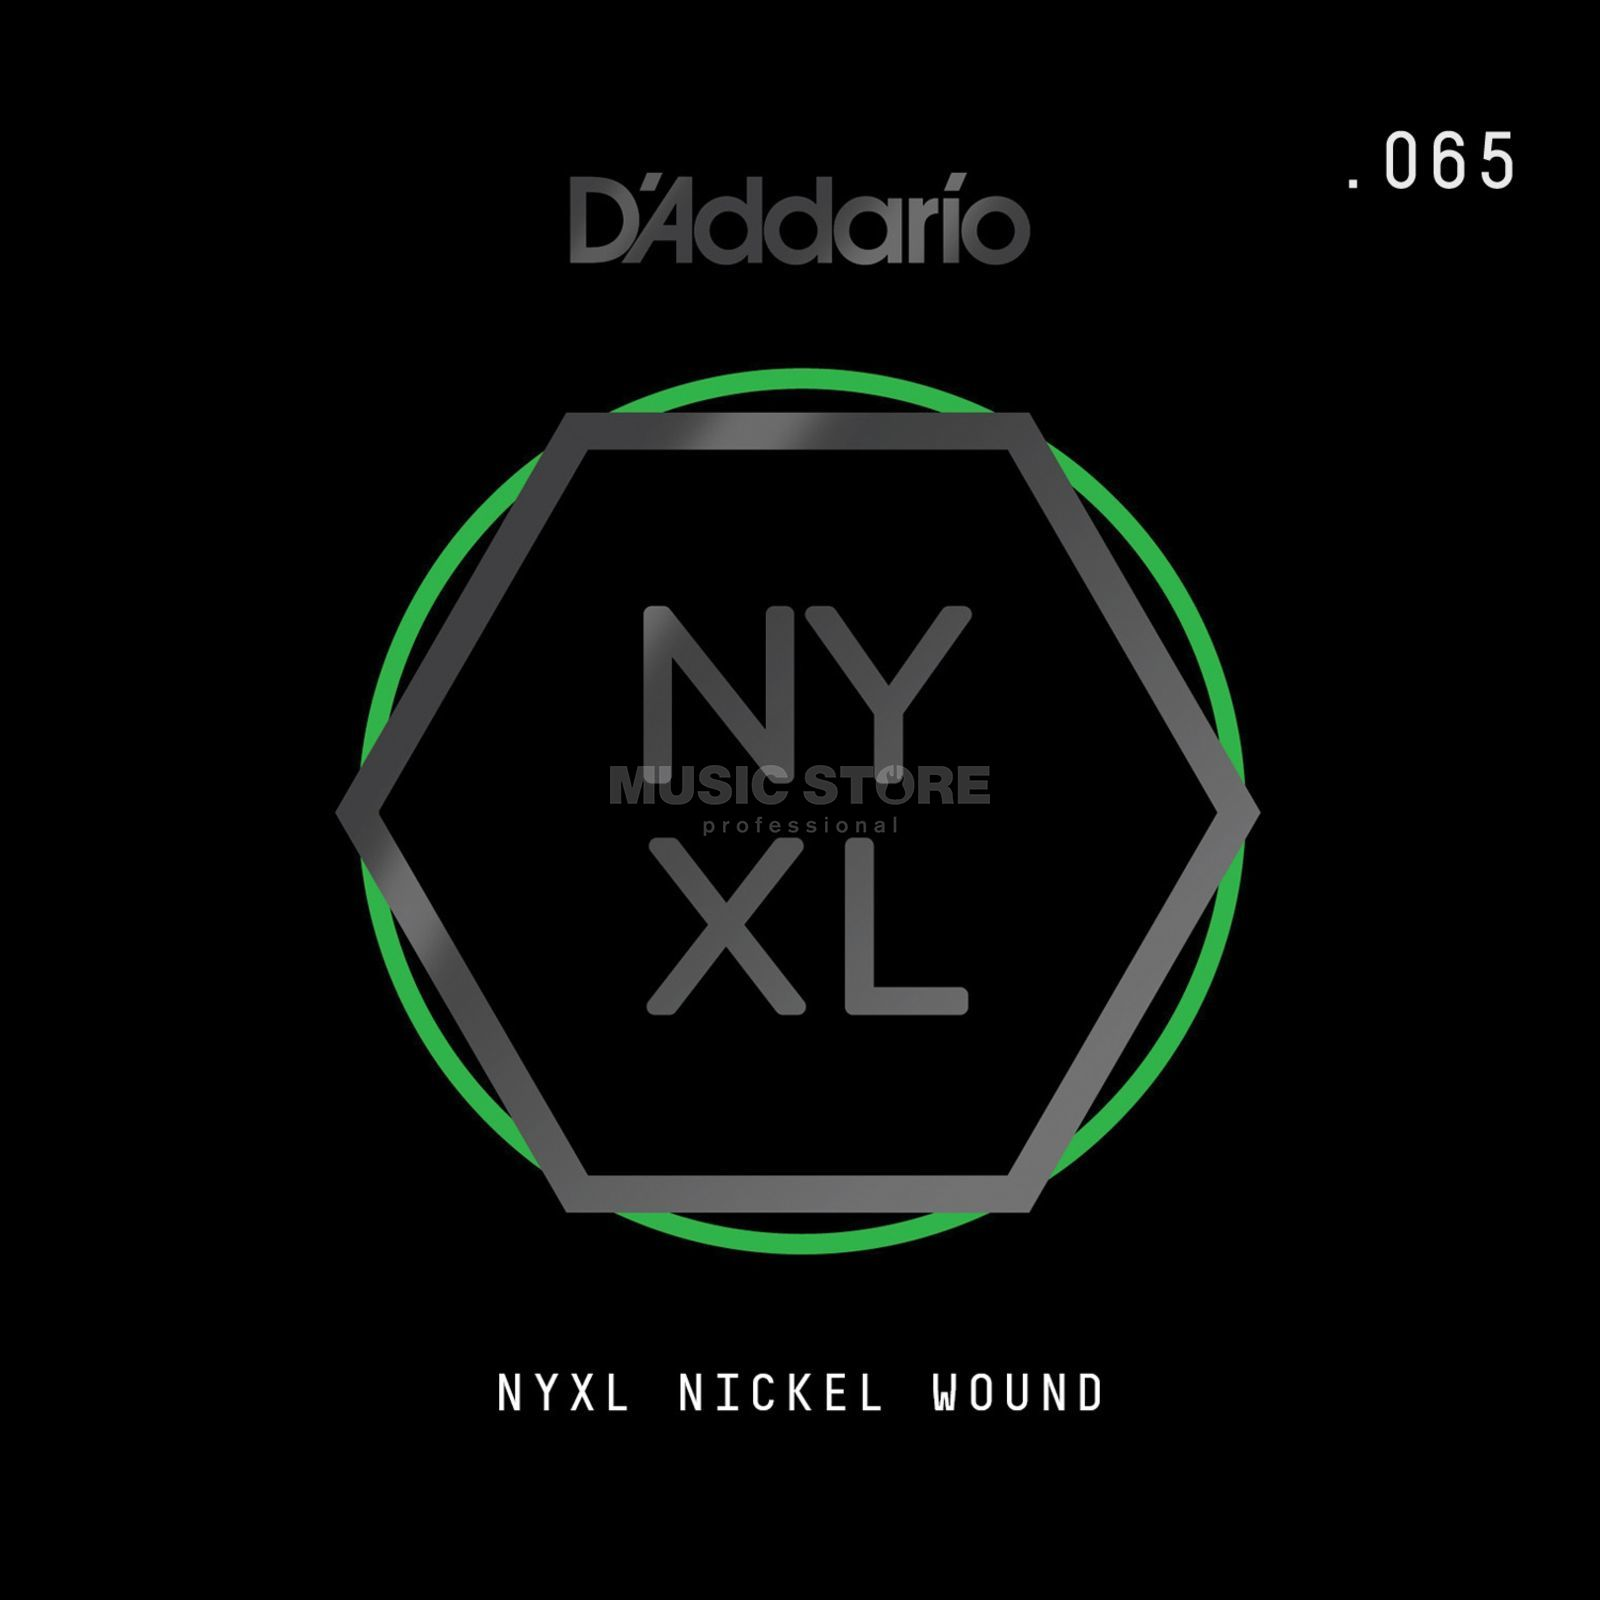 D'Addario NYNW065 Single String Nickel Wound Image du produit